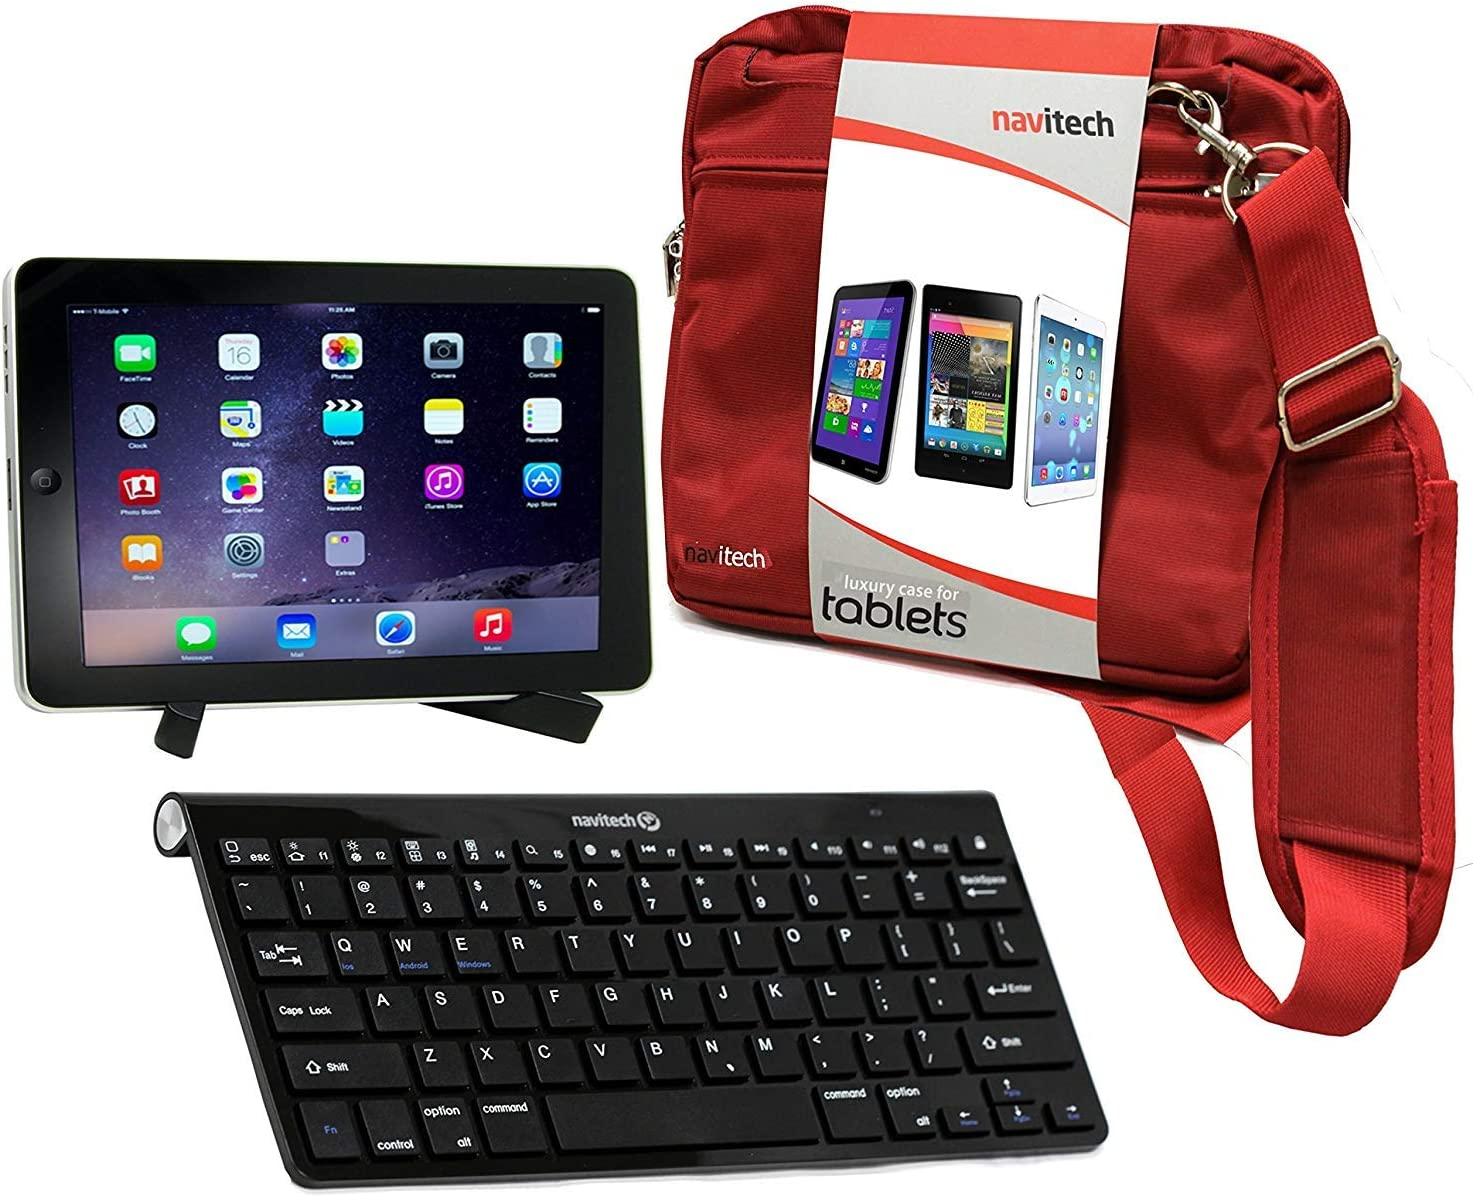 Navitech Converter Pack Including Multi OS Wireless Bluetooth Keyboard/Red Case Bag & Portable Stand Compatible with The Acer Iconia One 7 | Acer Iconia One 7 B1-780 | Acer Iconia One 8 B1-820 | 830